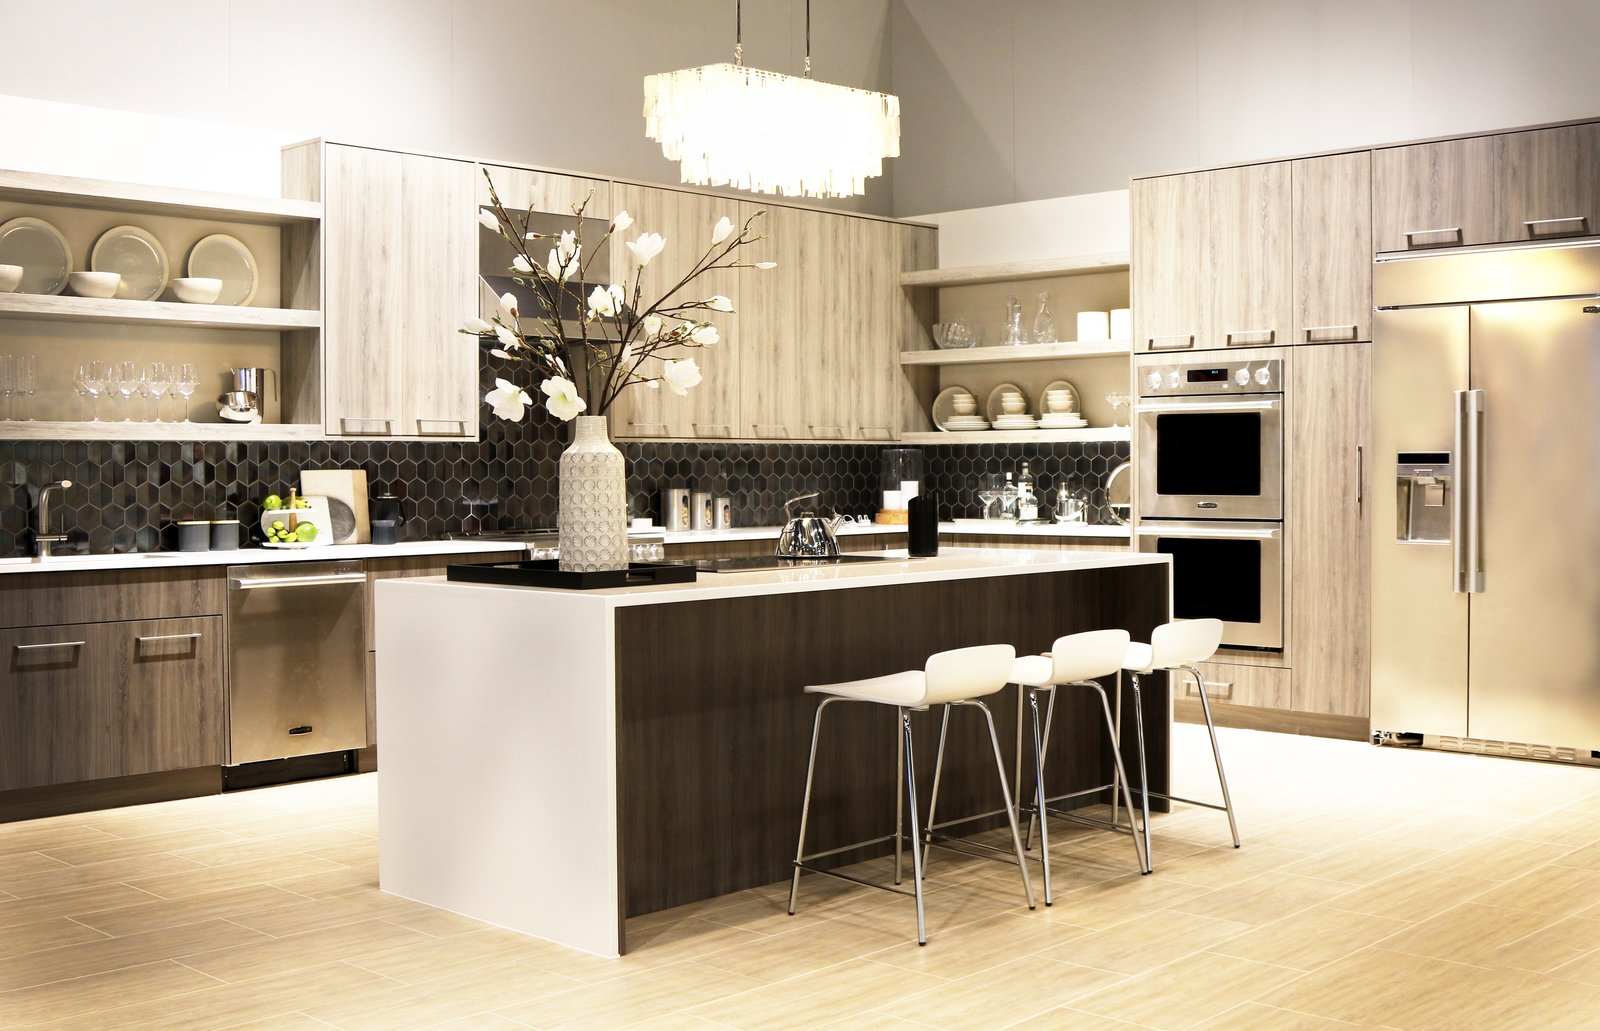 The Signature Kitchen Suite Baking Kitchen Features Maple Wood Cabinetry By  Green Forest Cabinetry, Porcelain